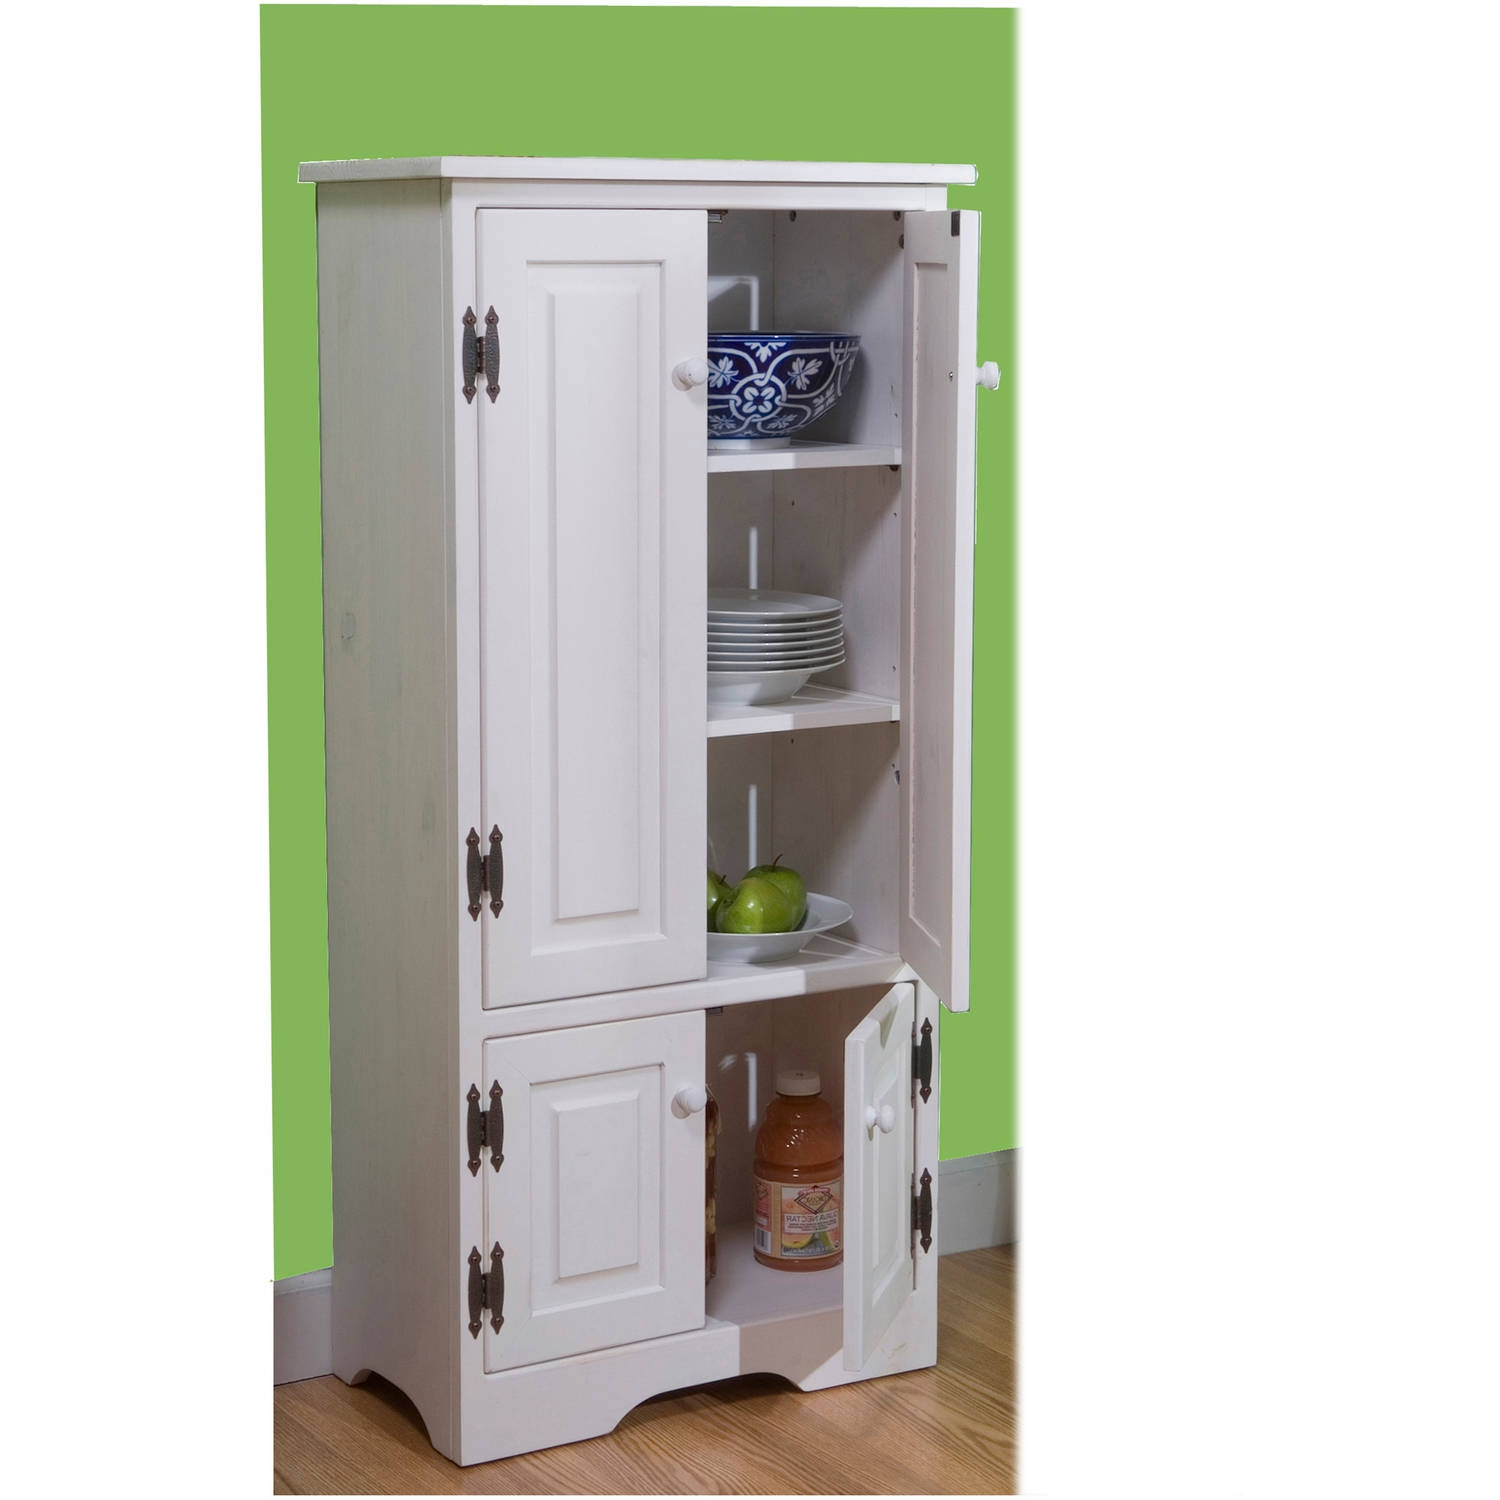 Permalink to Tall Pantry Storage Cabinets With Doors